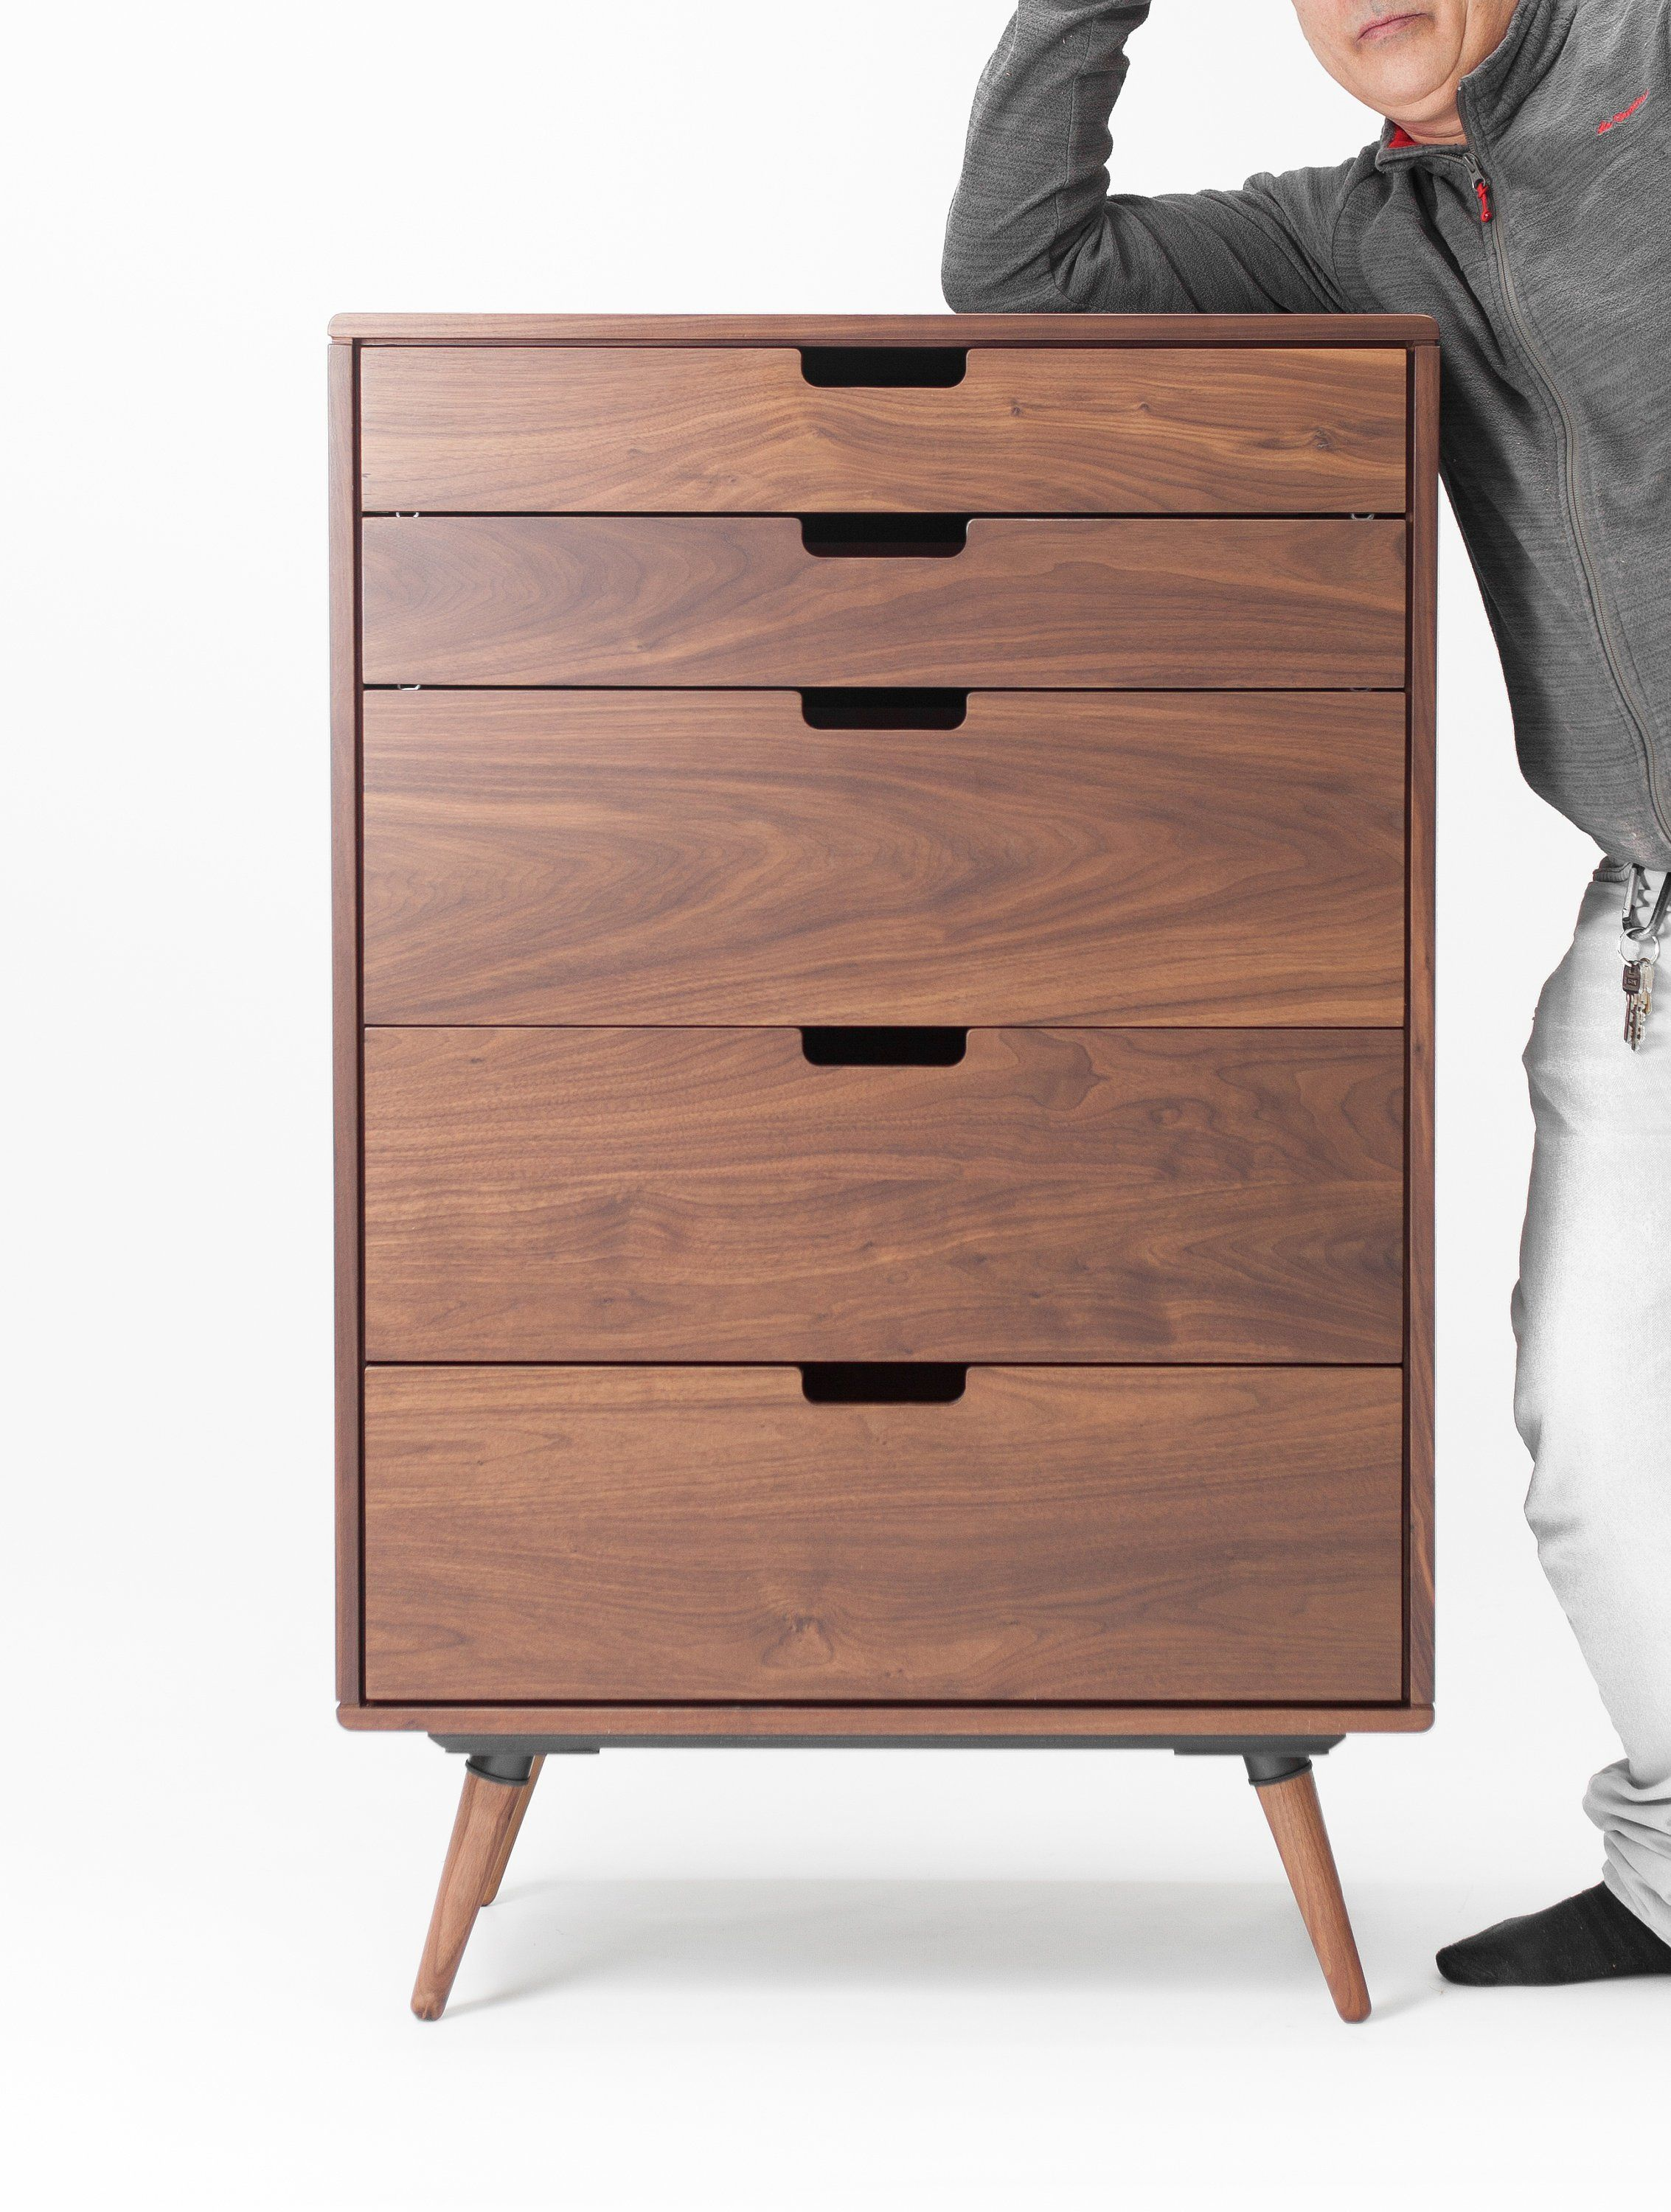 Chest of drawers tall boy in walnut by manuel barrera for habitables